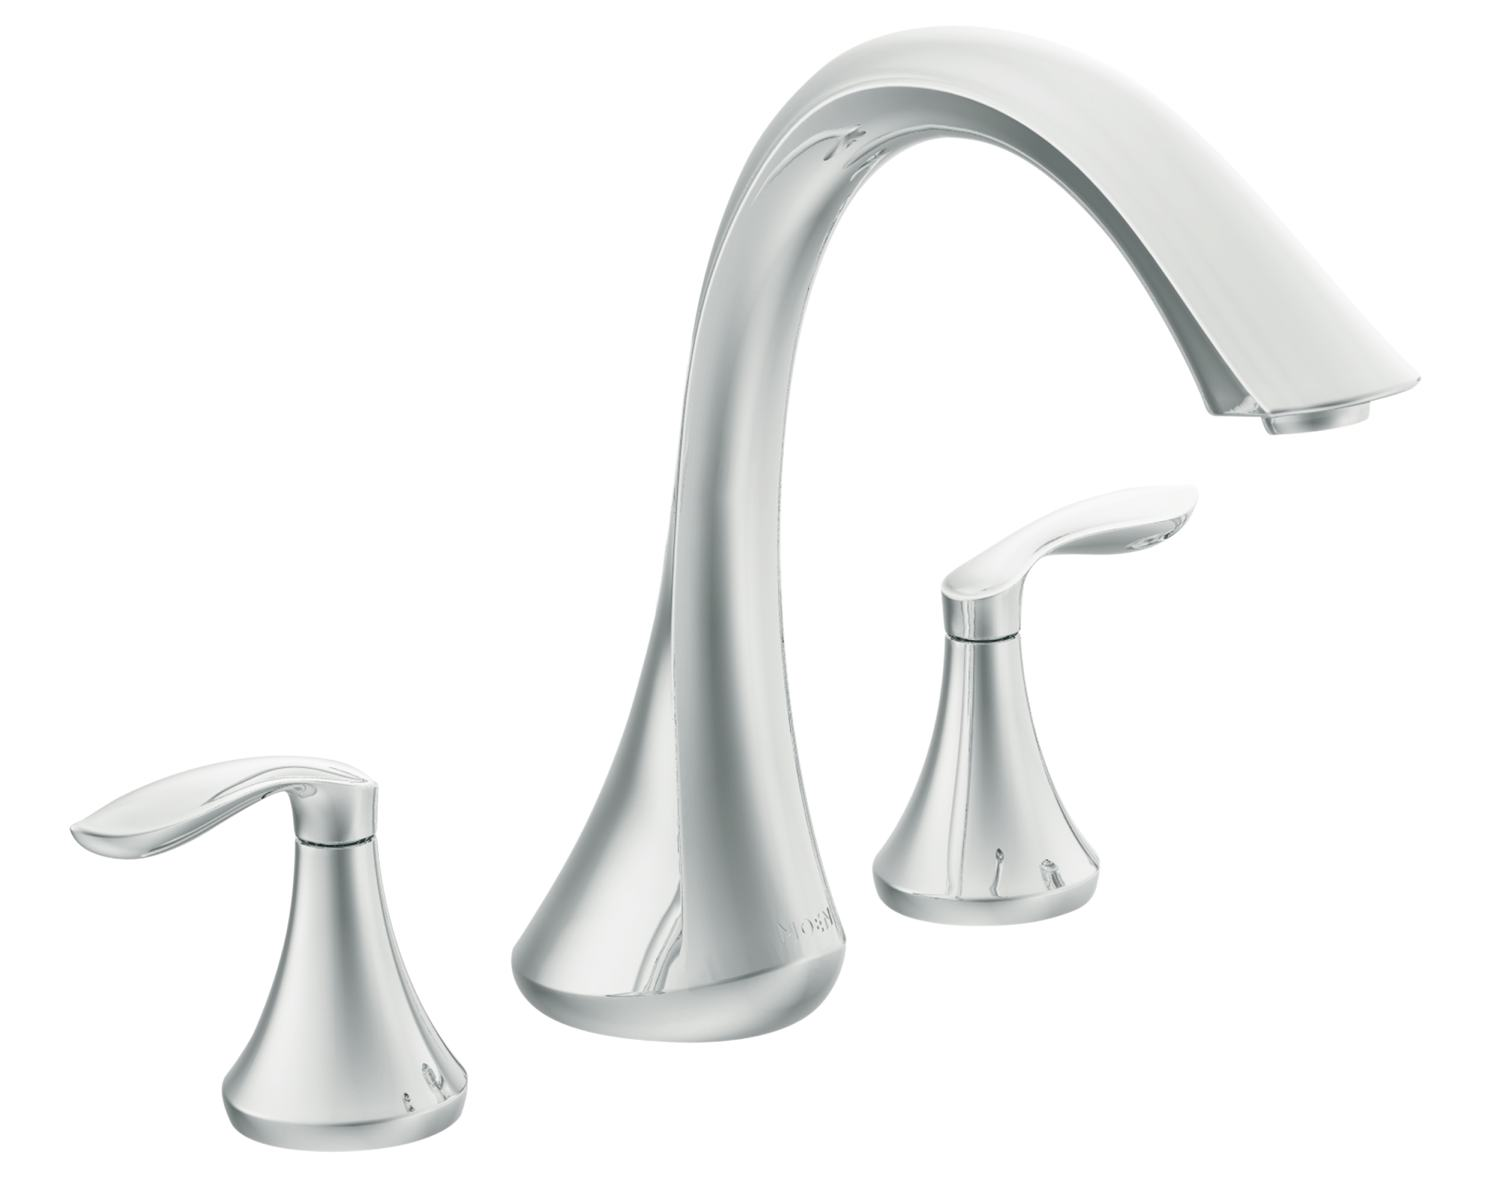 replace roman tub faucet. Eva Roman chrome Moen T943 Two Handle High Arc Tub Faucet without Valve